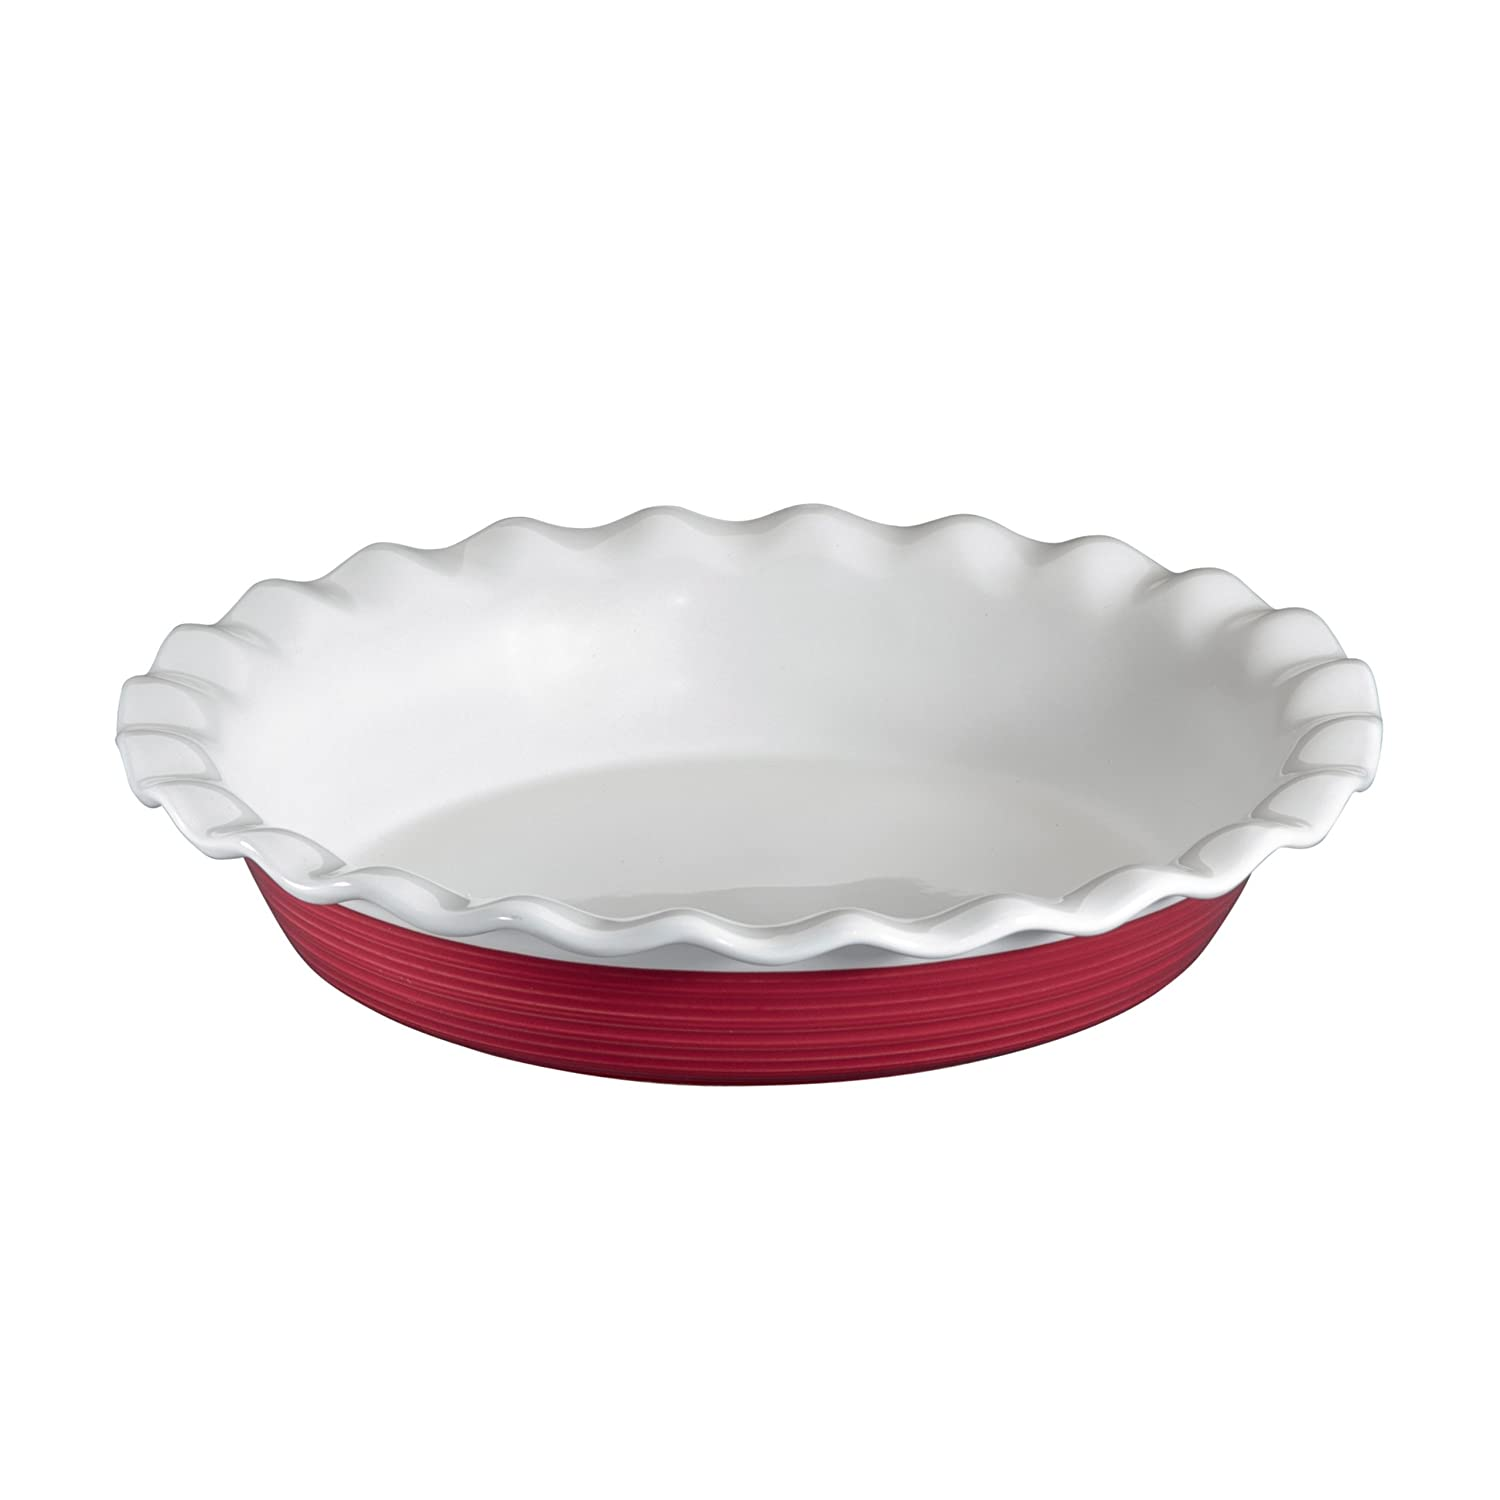 Amazon.com CorningWare Etch 9.5 Inch Pie Plate in Sand Bake And Serve Sets Kitchen \u0026 Dining  sc 1 st  Amazon.com : 12 inch pie plate - pezcame.com